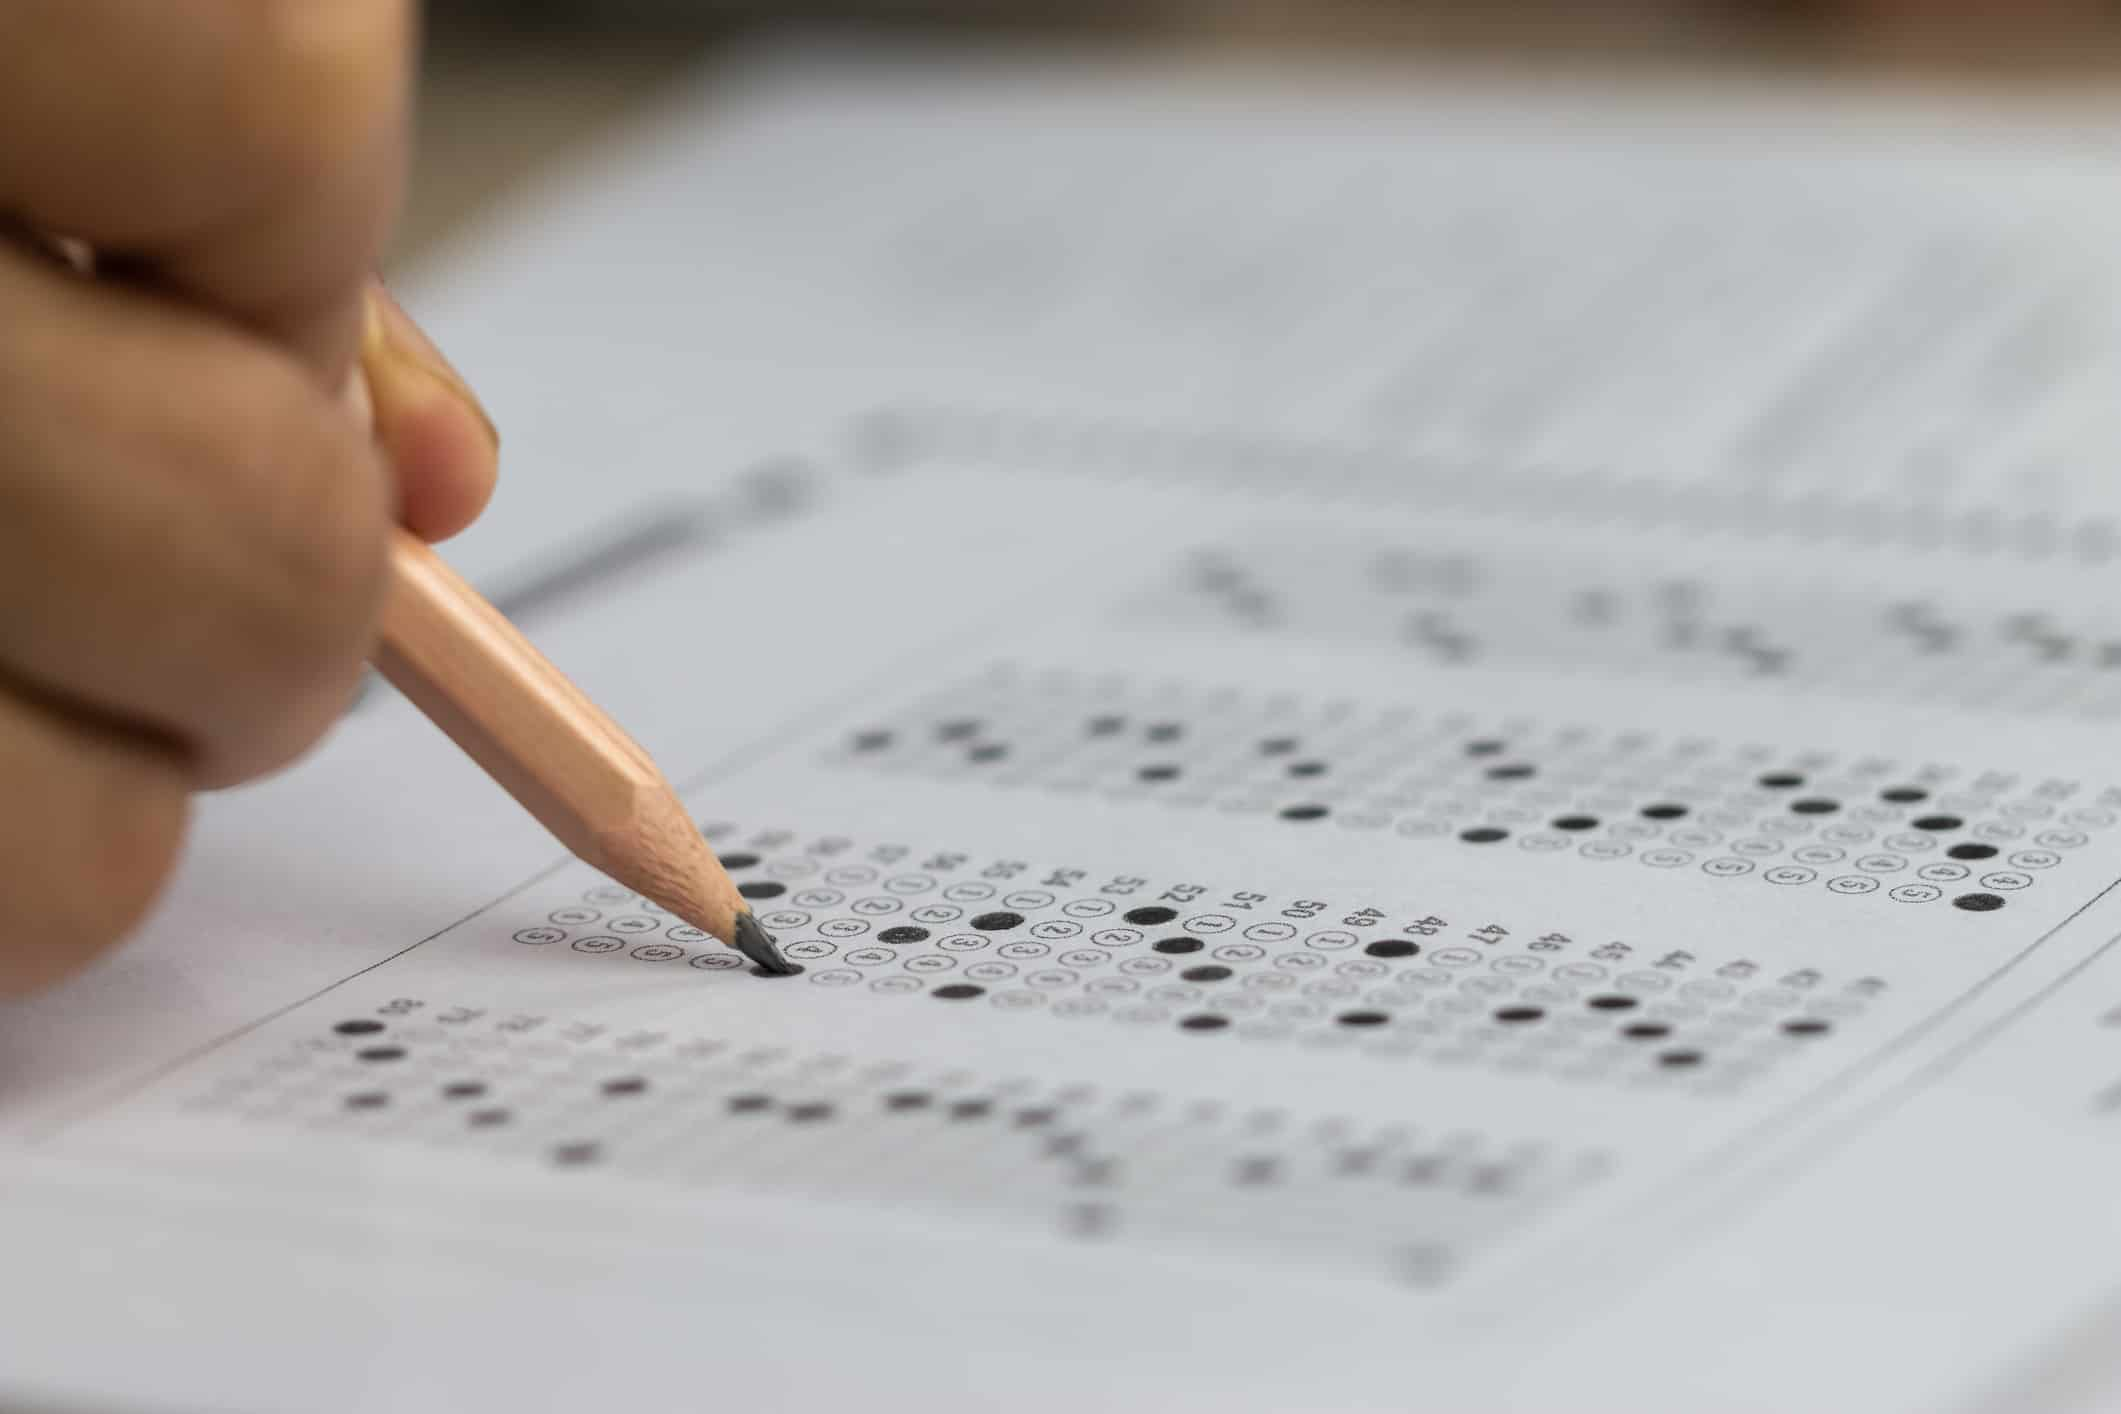 Student filling out a test with pencil